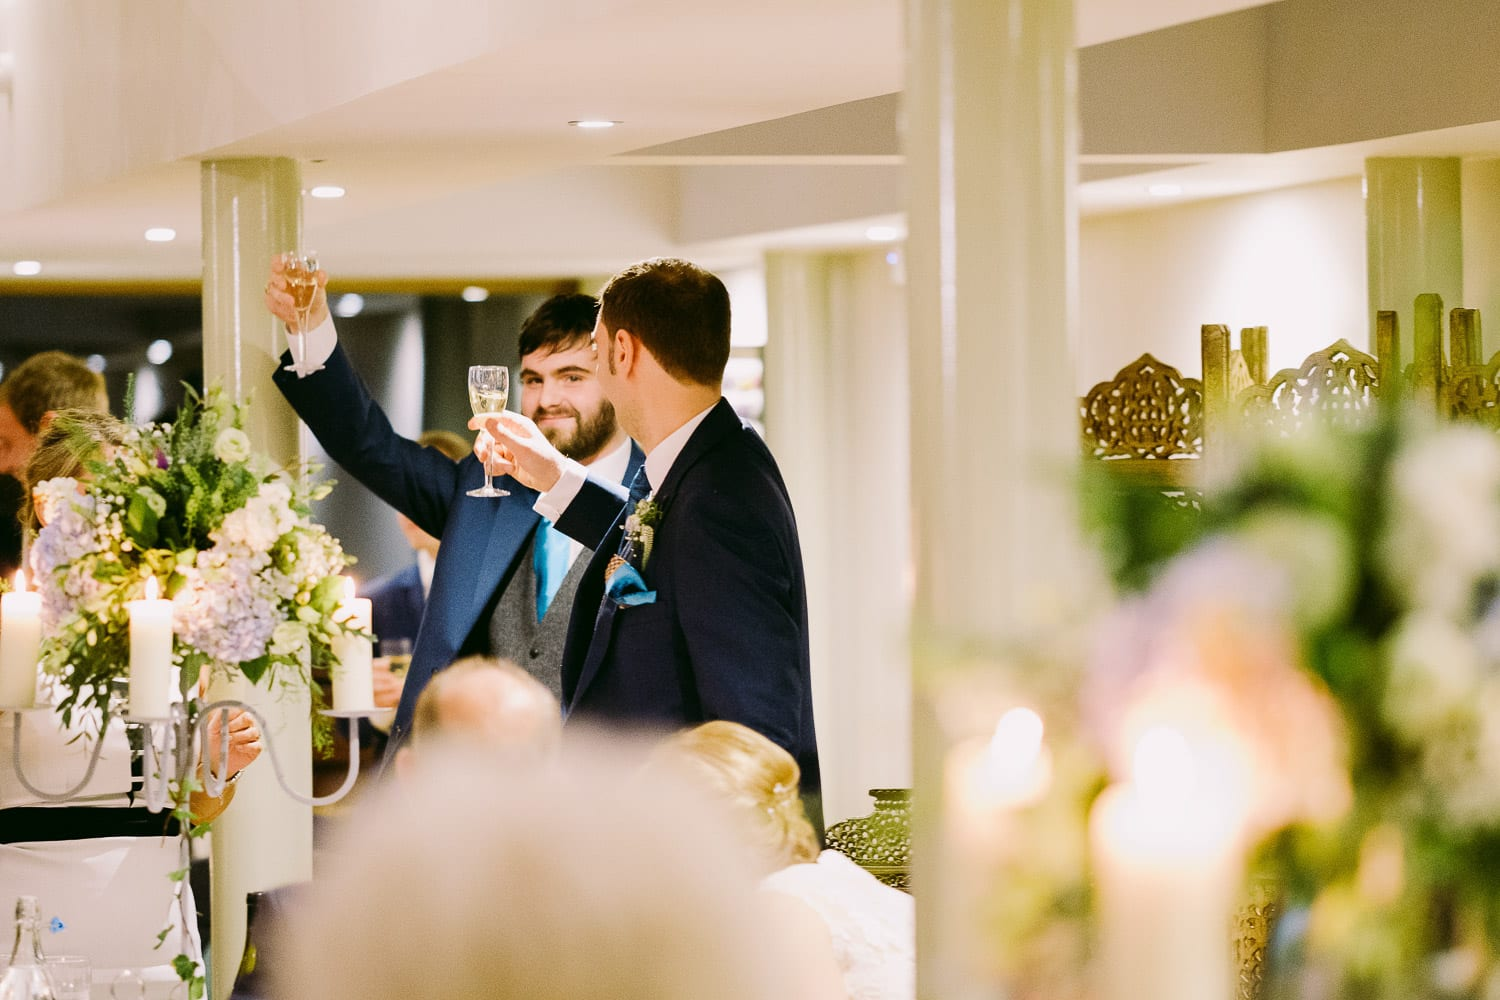 Guests raising a toast to the bride and groom